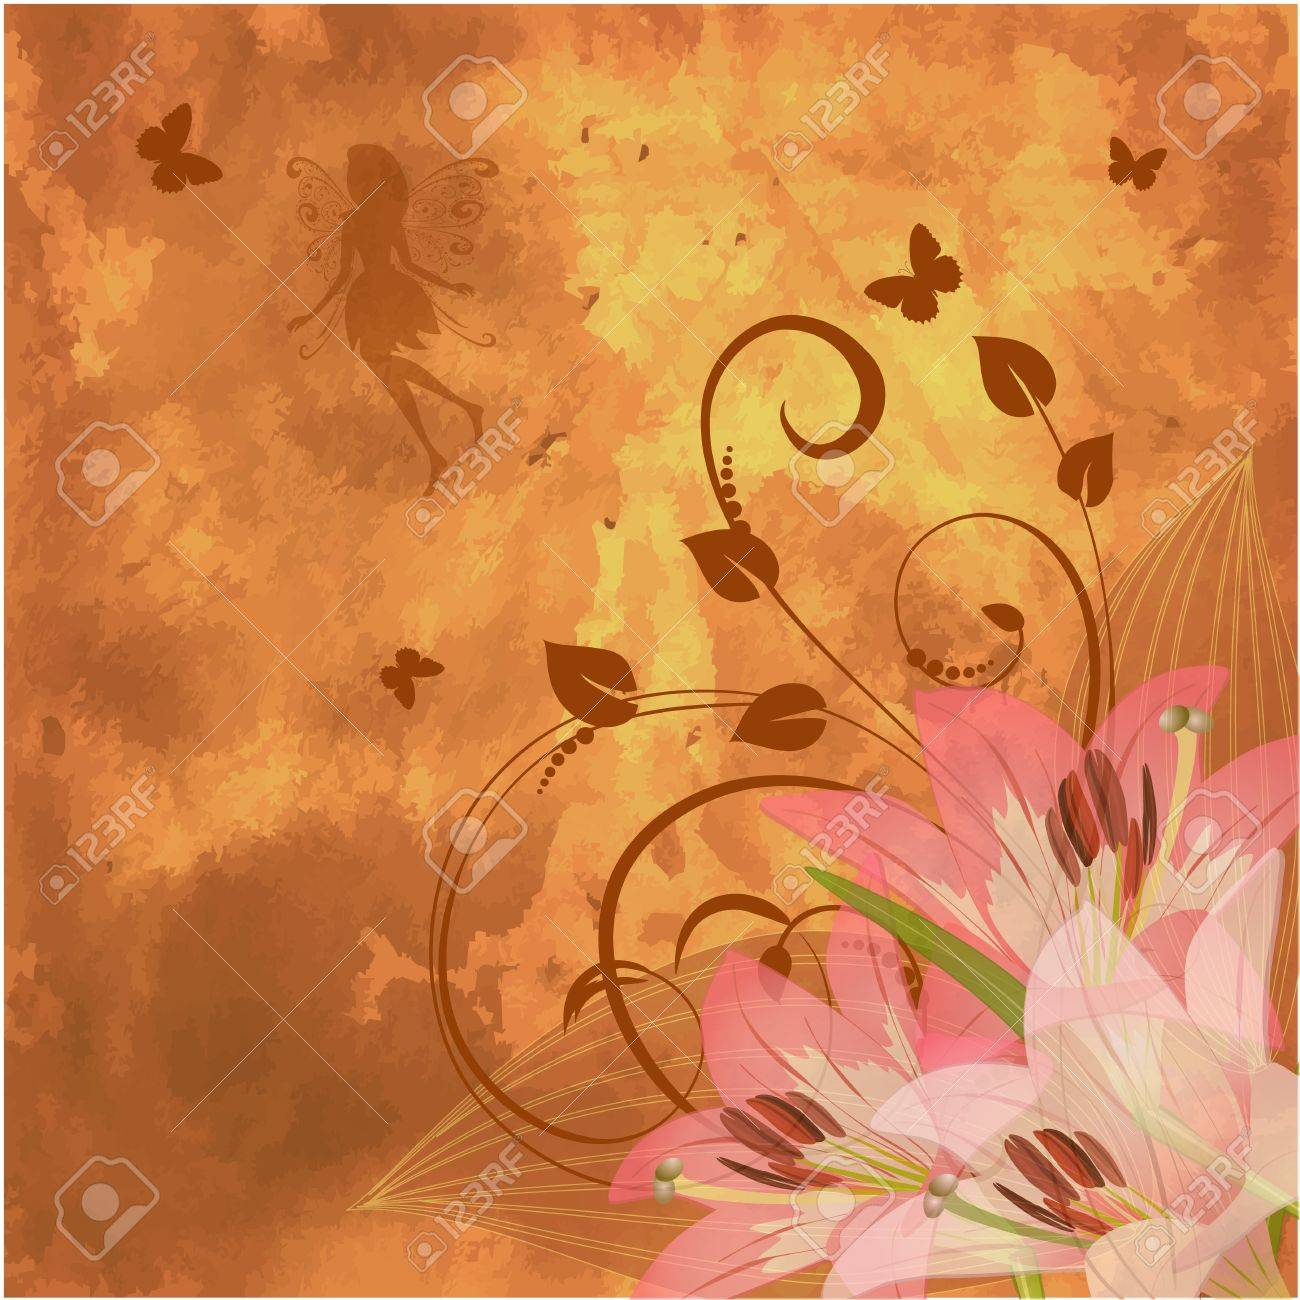 floral retro fantasy Stock Vector - 9506959